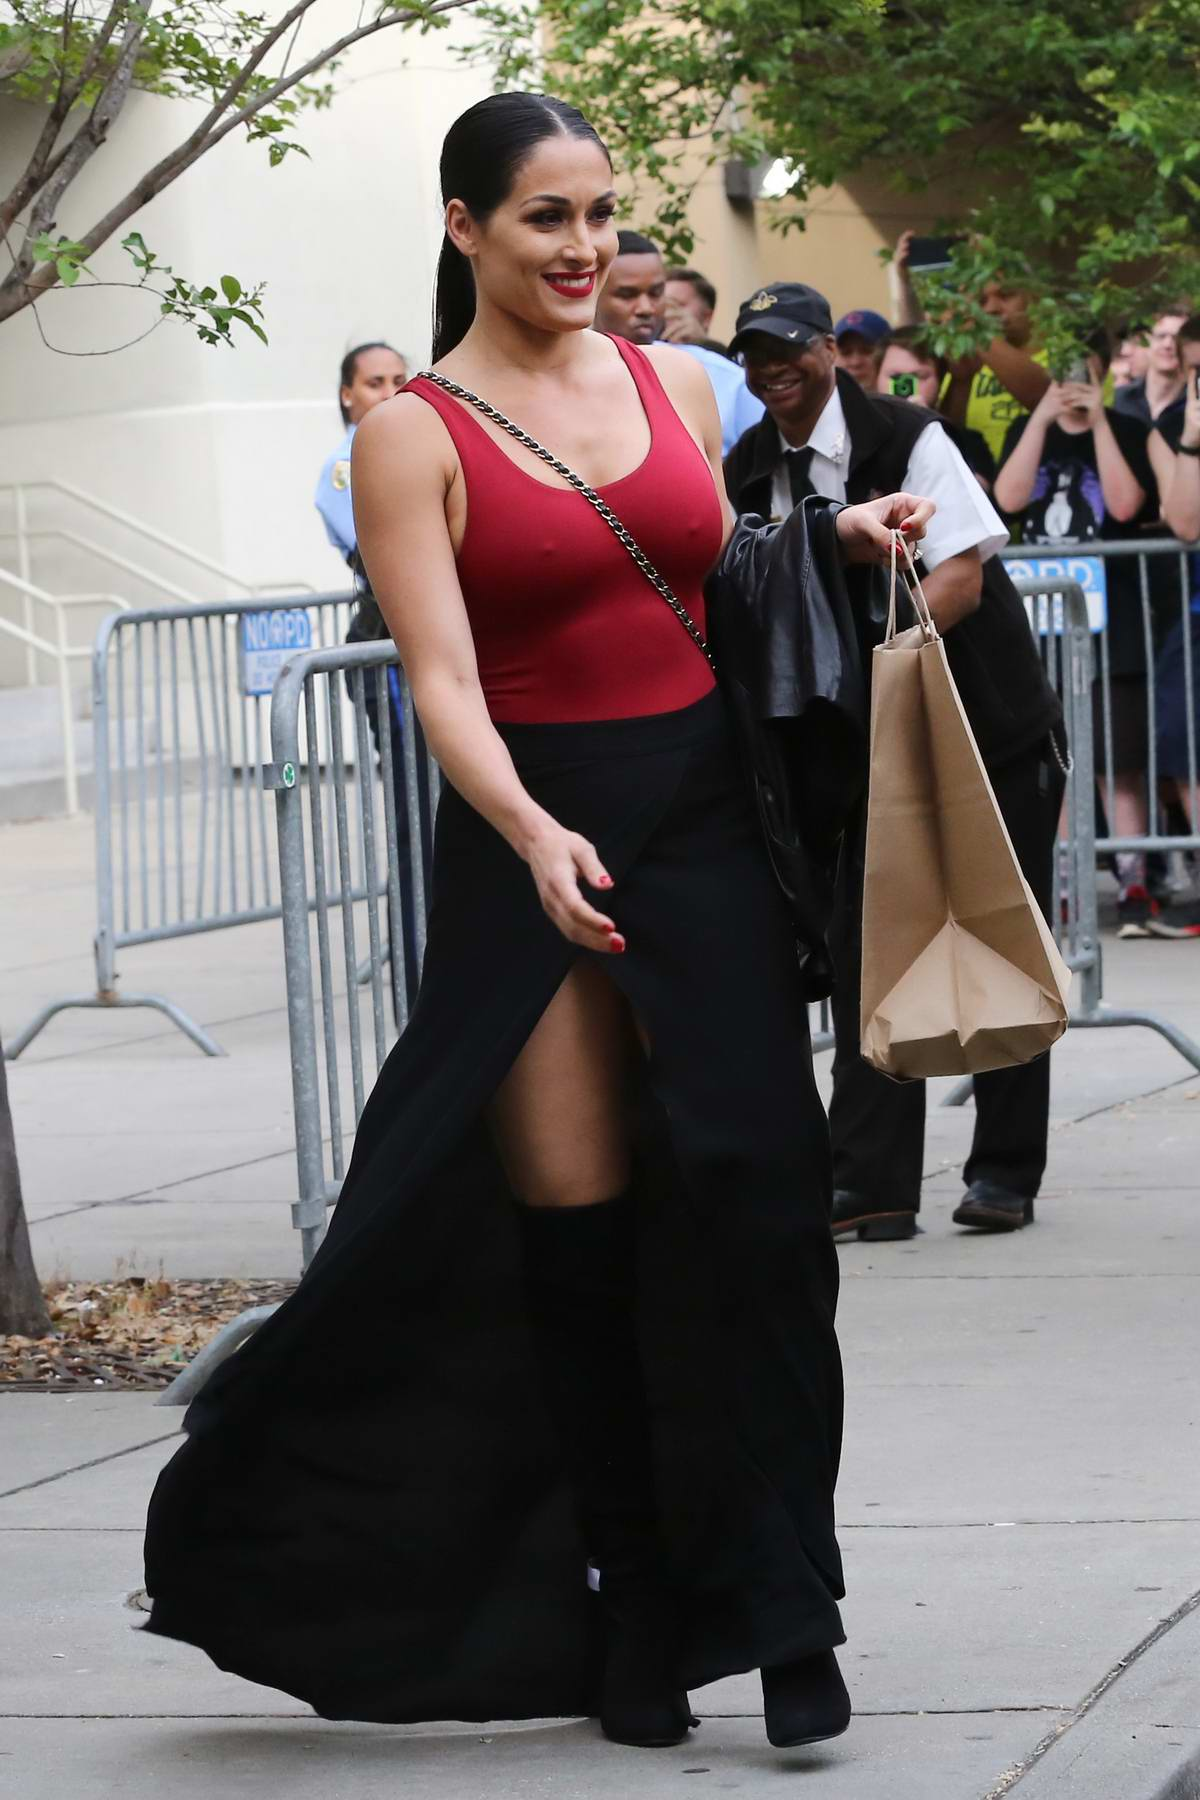 Nikki Bella arriving at the Wrestlemania 34th Hall of Fame ceremony in New Orleans, Louisiana